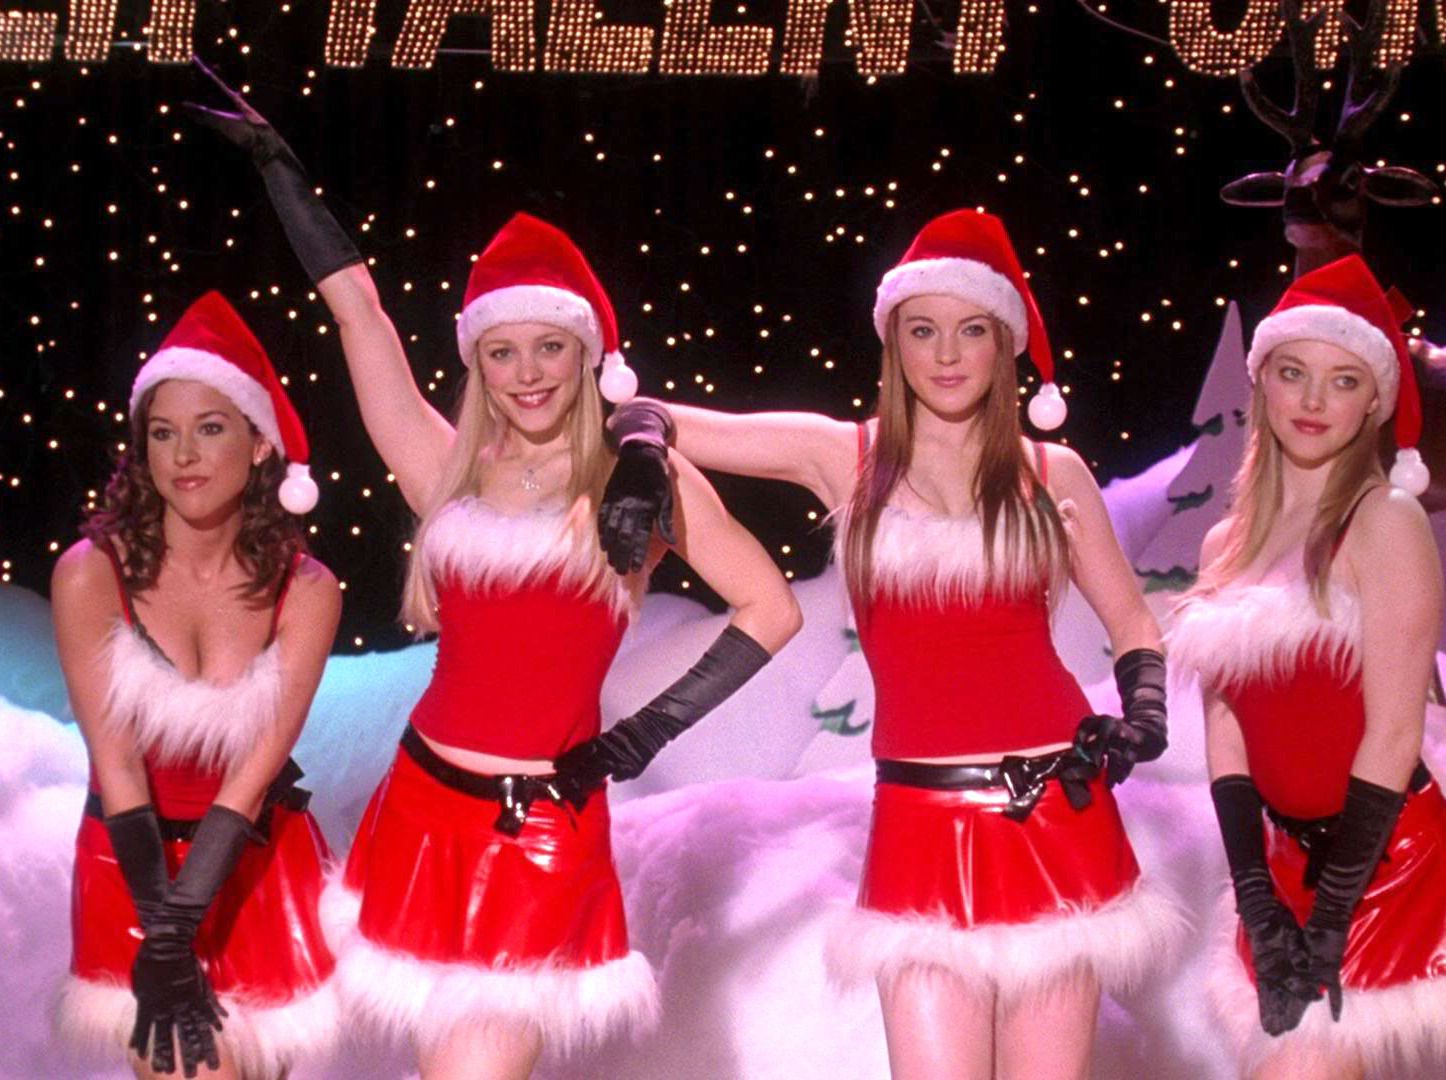 Tina Fey is turning the Mean Girls musical back into a movie